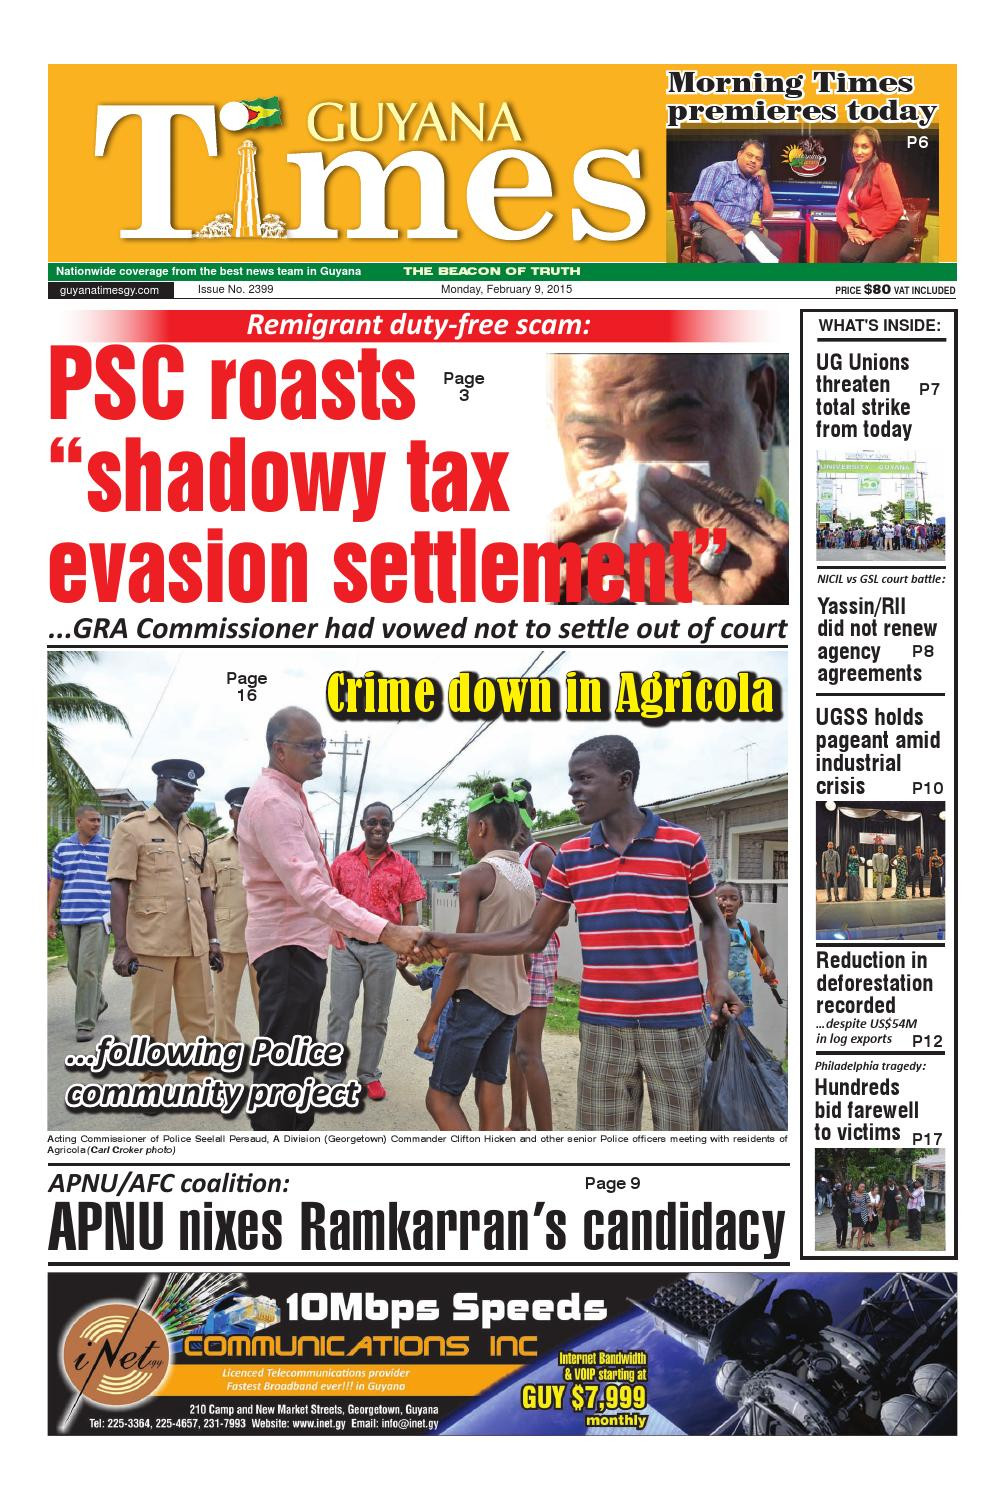 Guyana Department Of Public Information Nice Guyana Times Daily February 9 2015 by Gytimes issuu